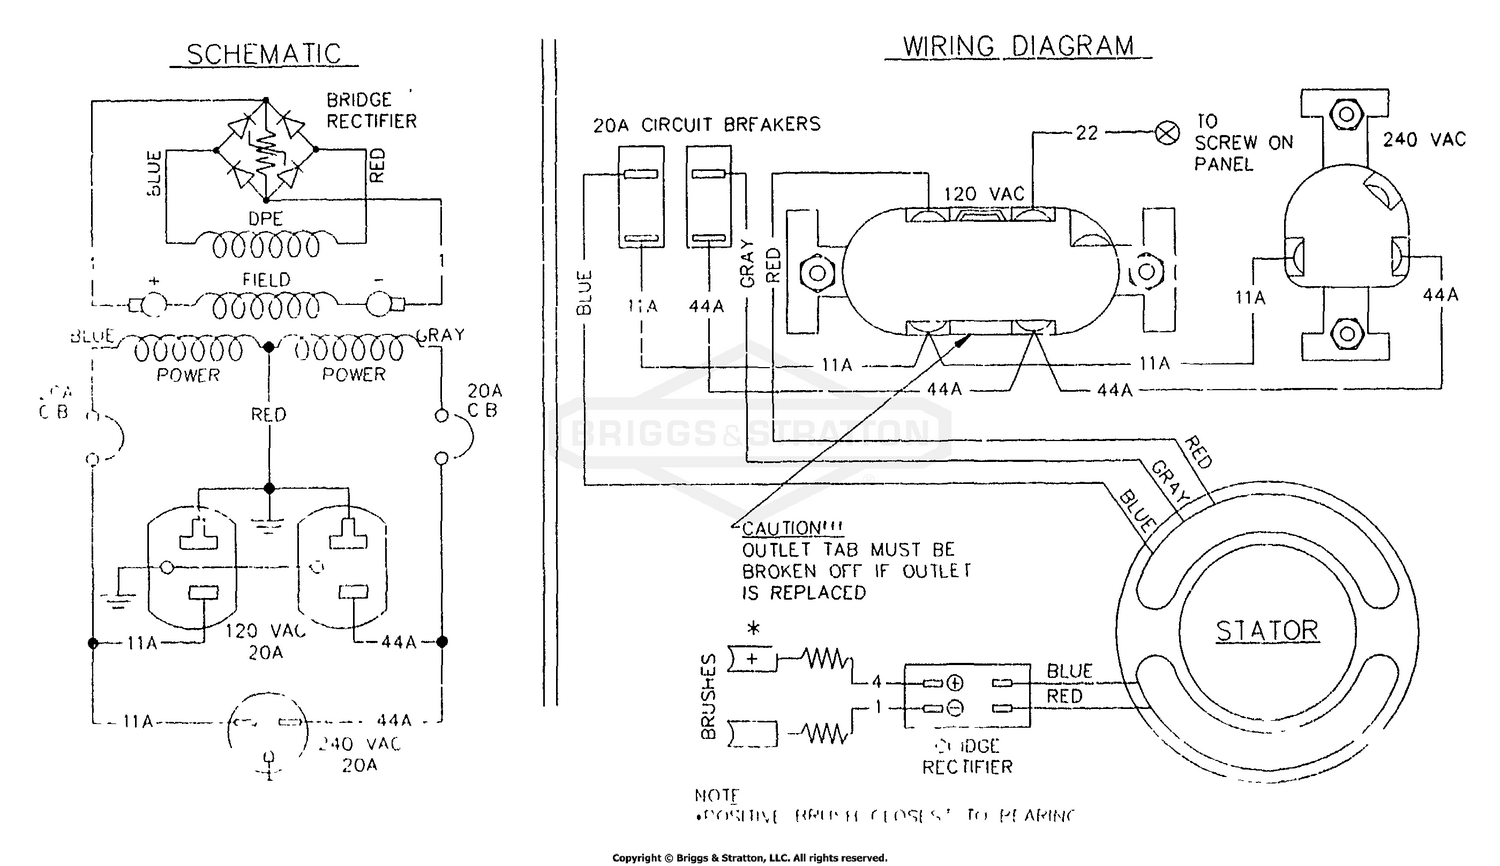 Briggs Amp Stratton Power Products Del 26072017021729 5512 0 S Wiring Diagram Schematic Standard 4000 Series